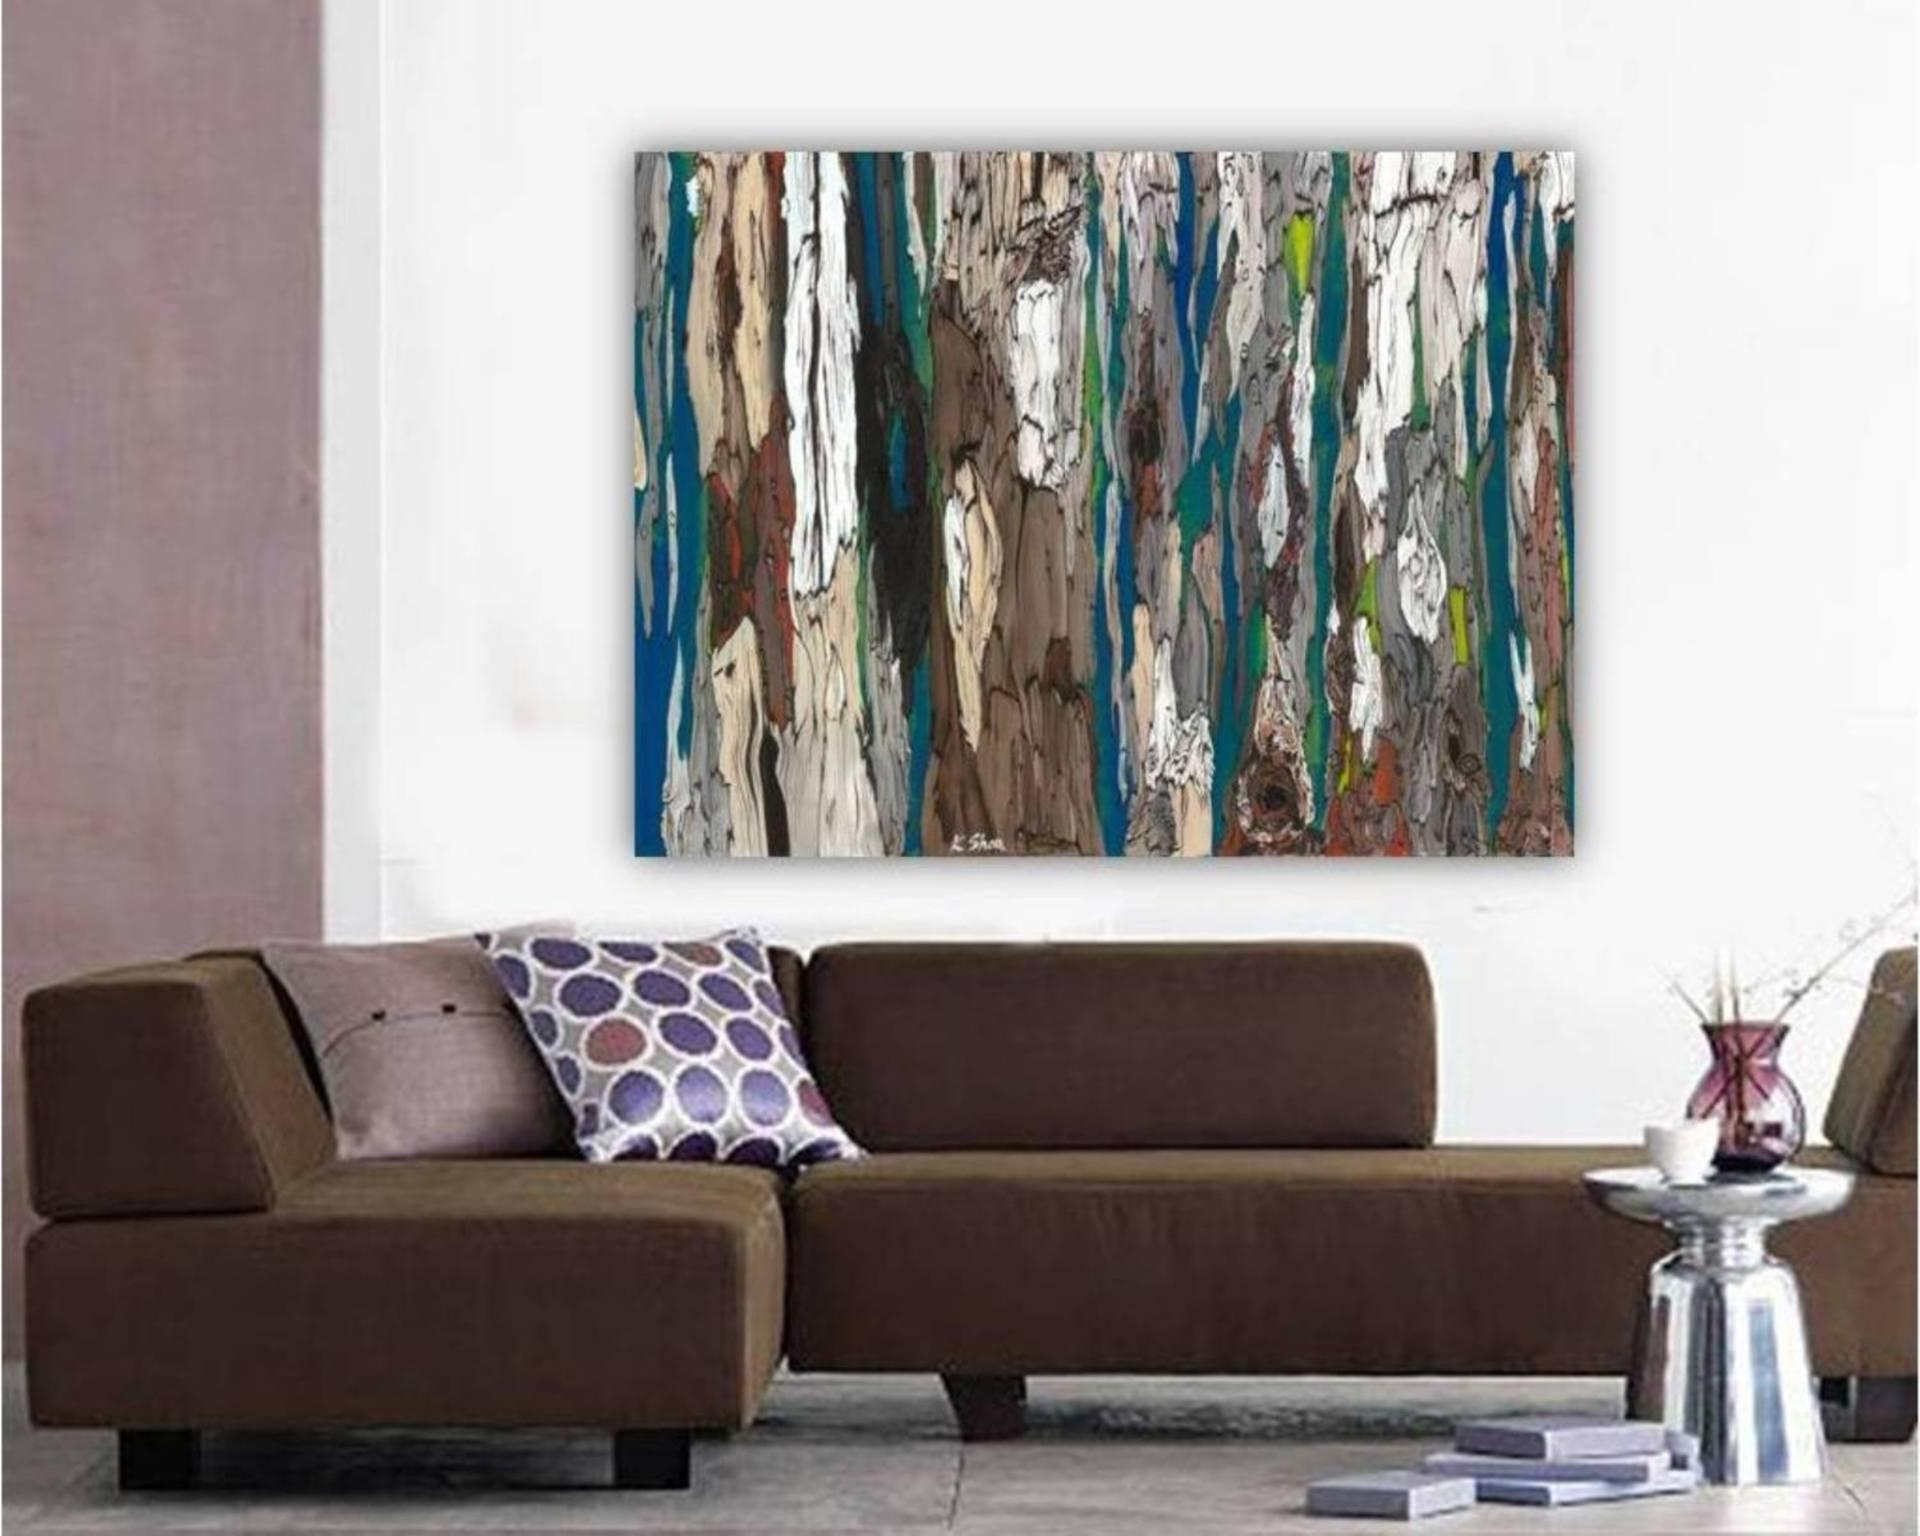 Wall Design: Abstract Wall Art Images (View 13 of 20)